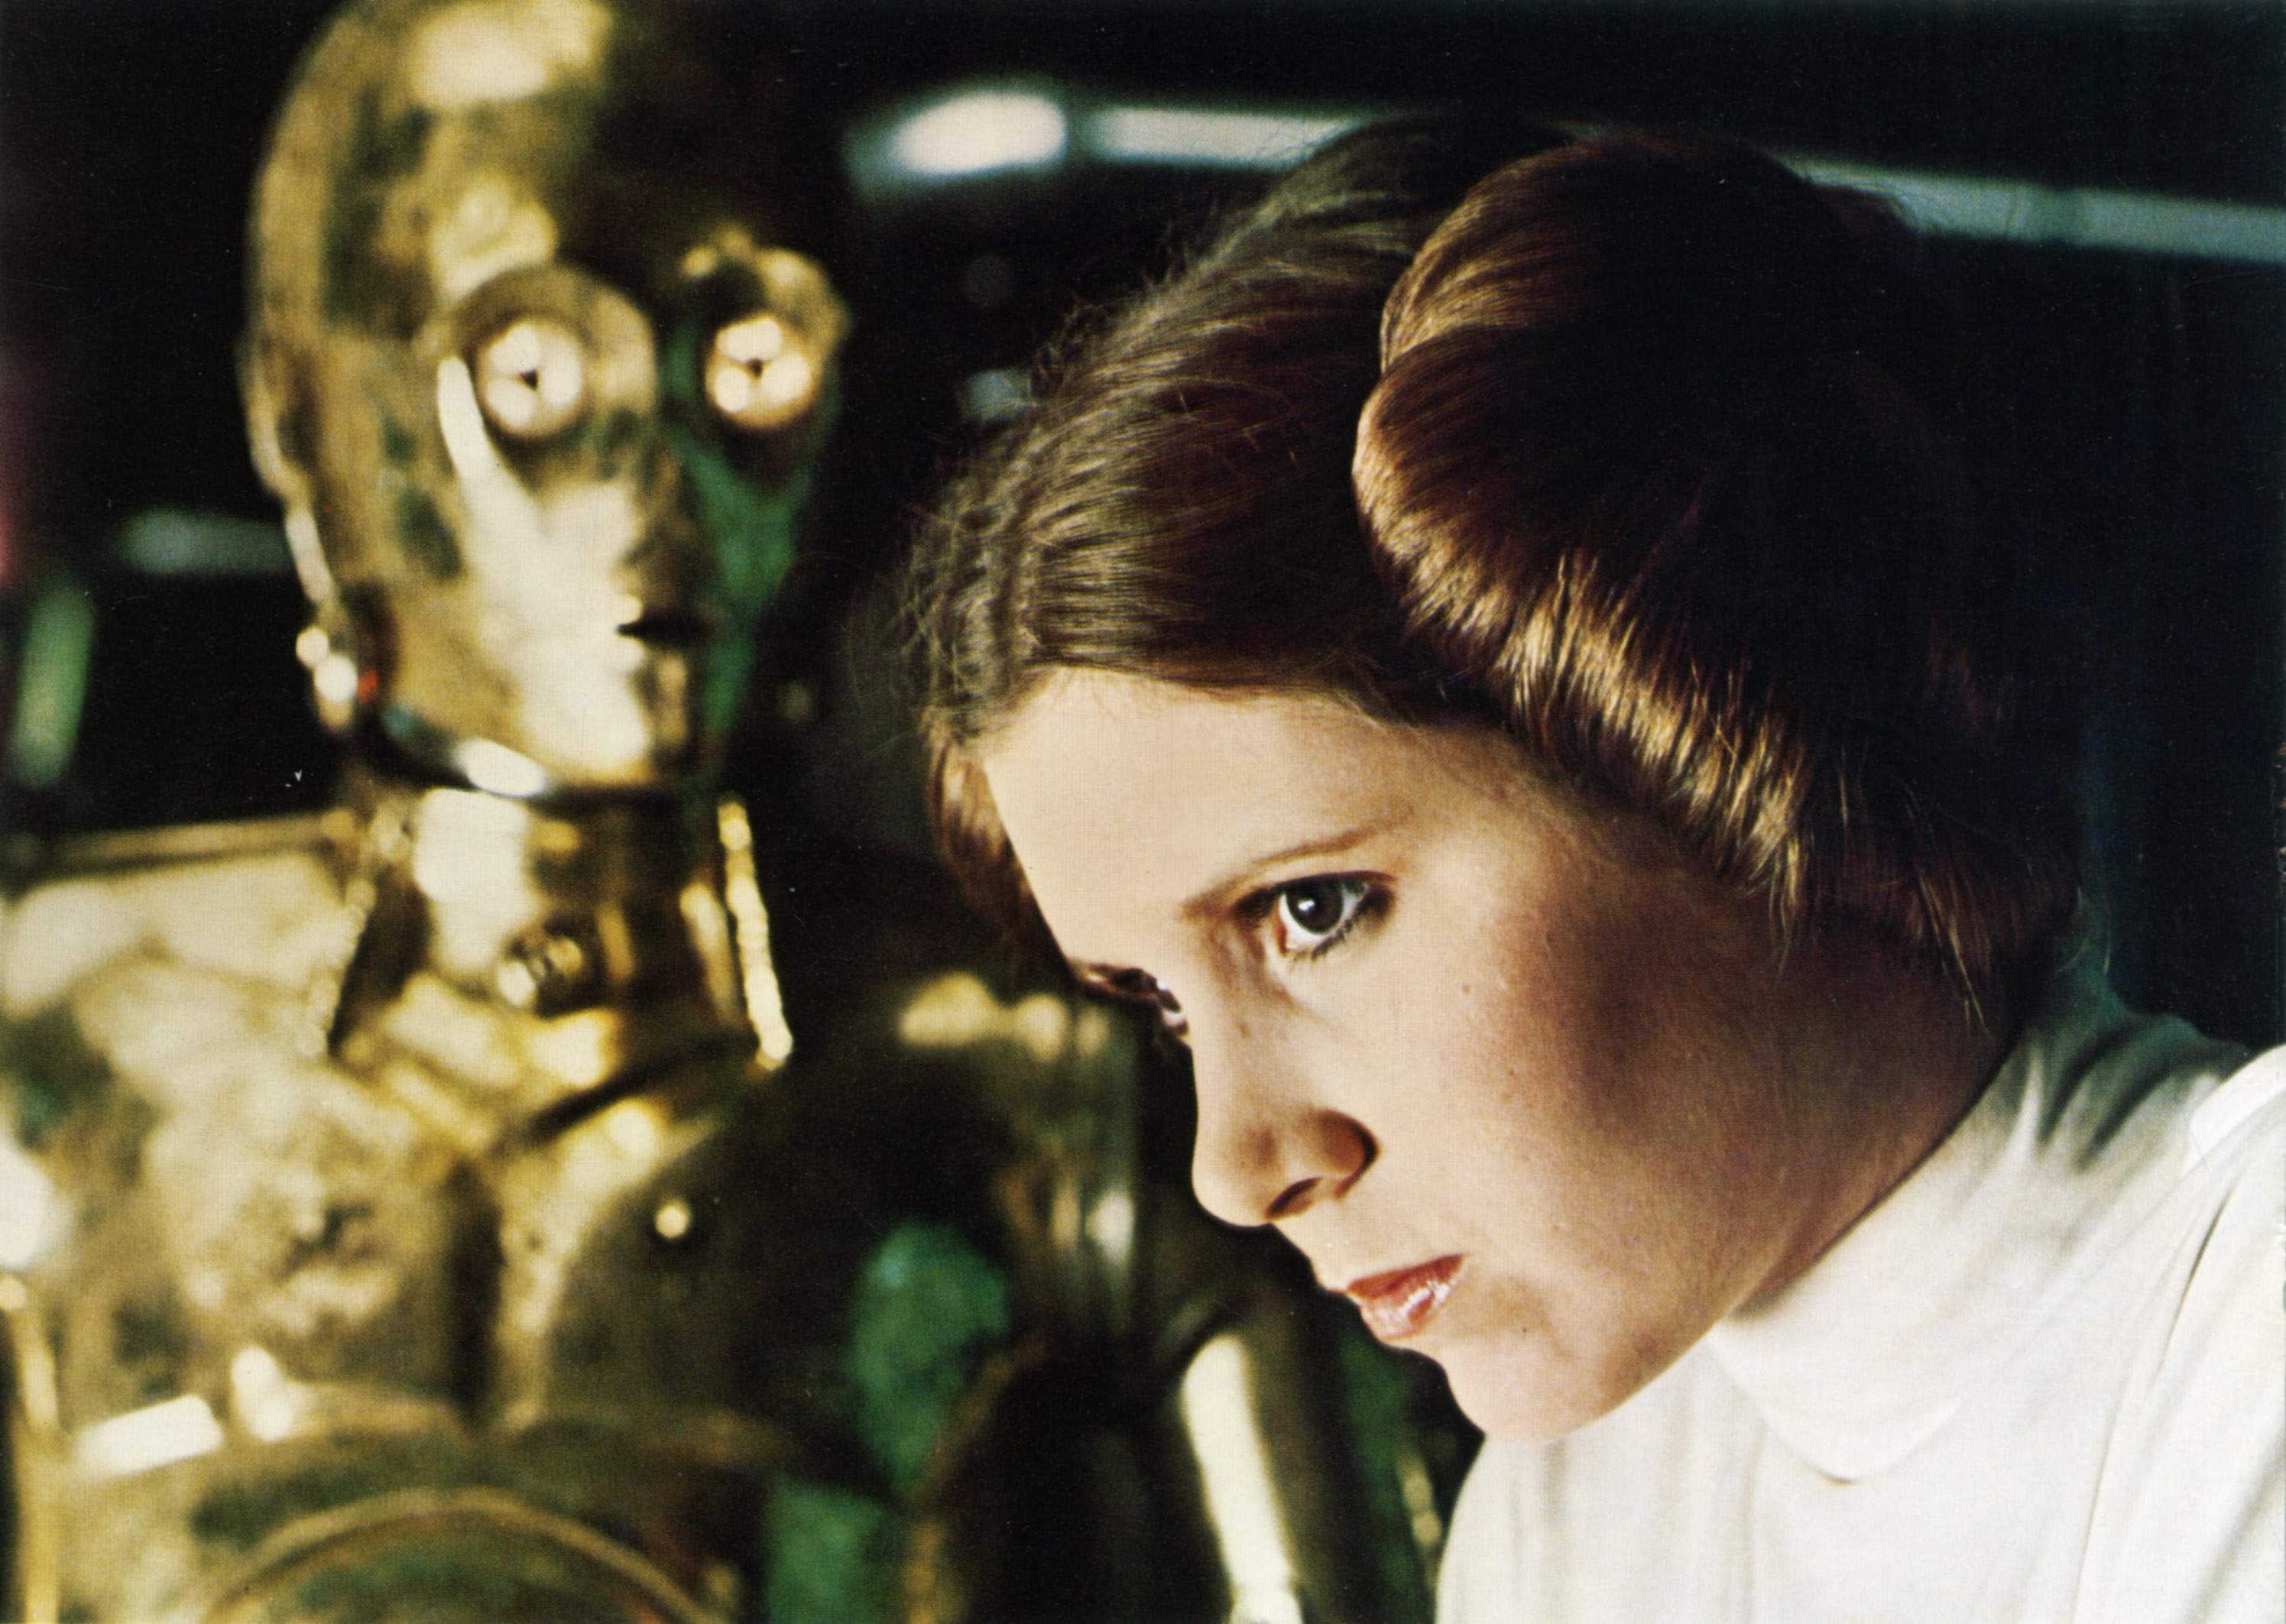 Carrie Fisher in deep thought.